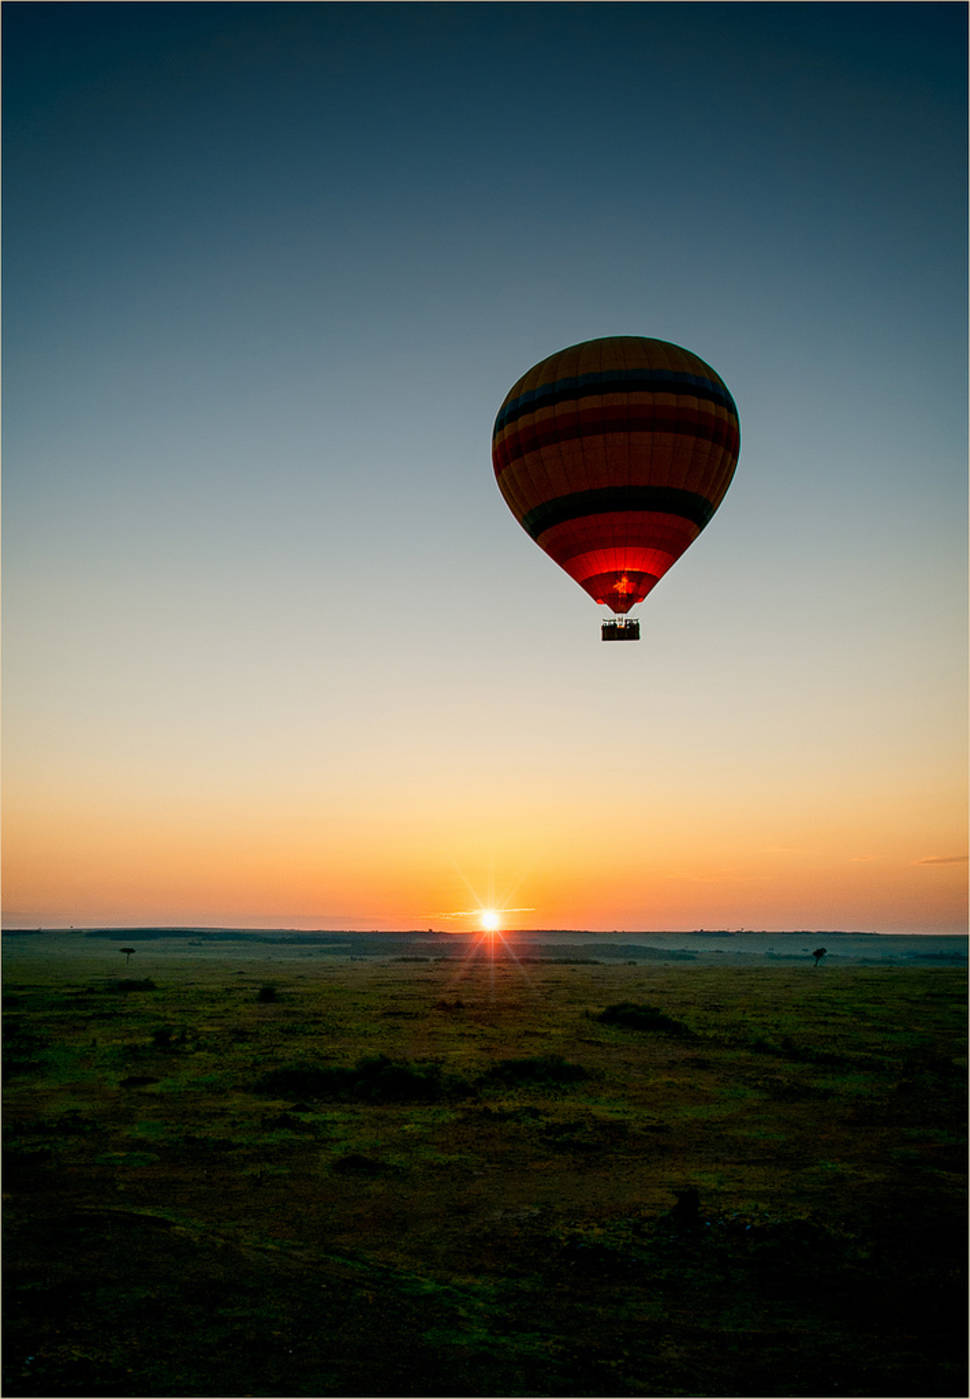 Masai Mara at Sunrise